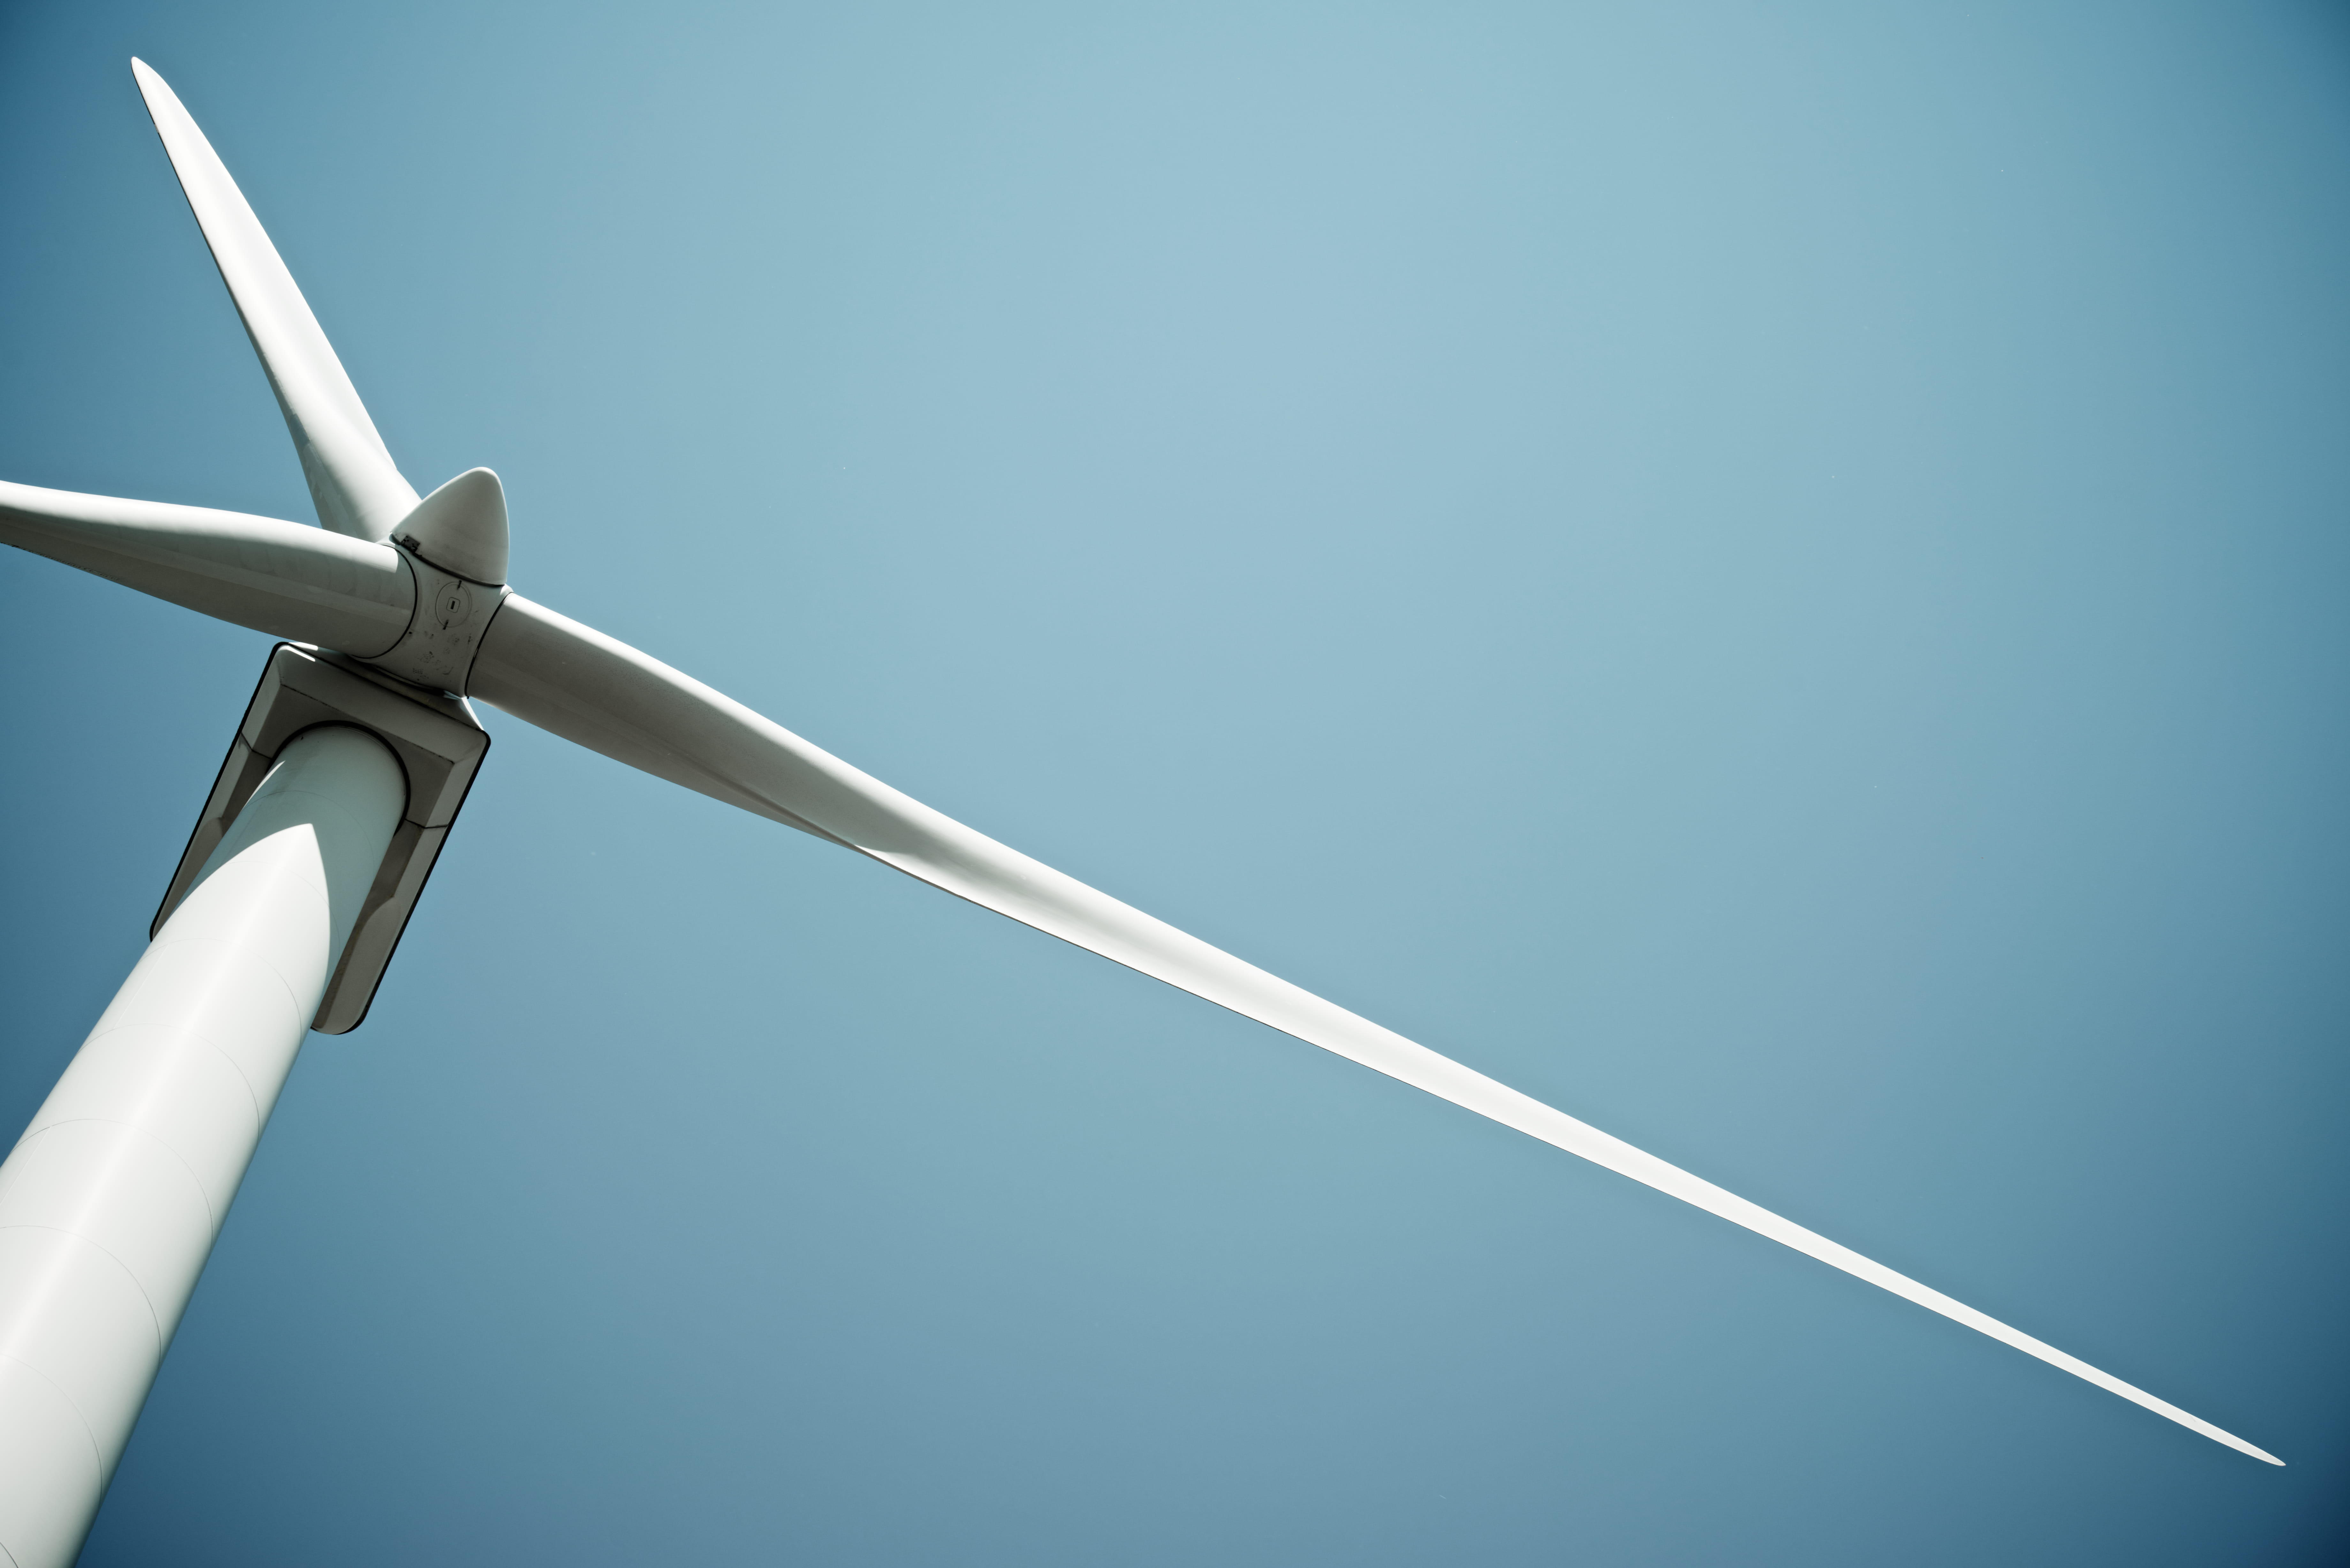 Close up of wind turbine blade